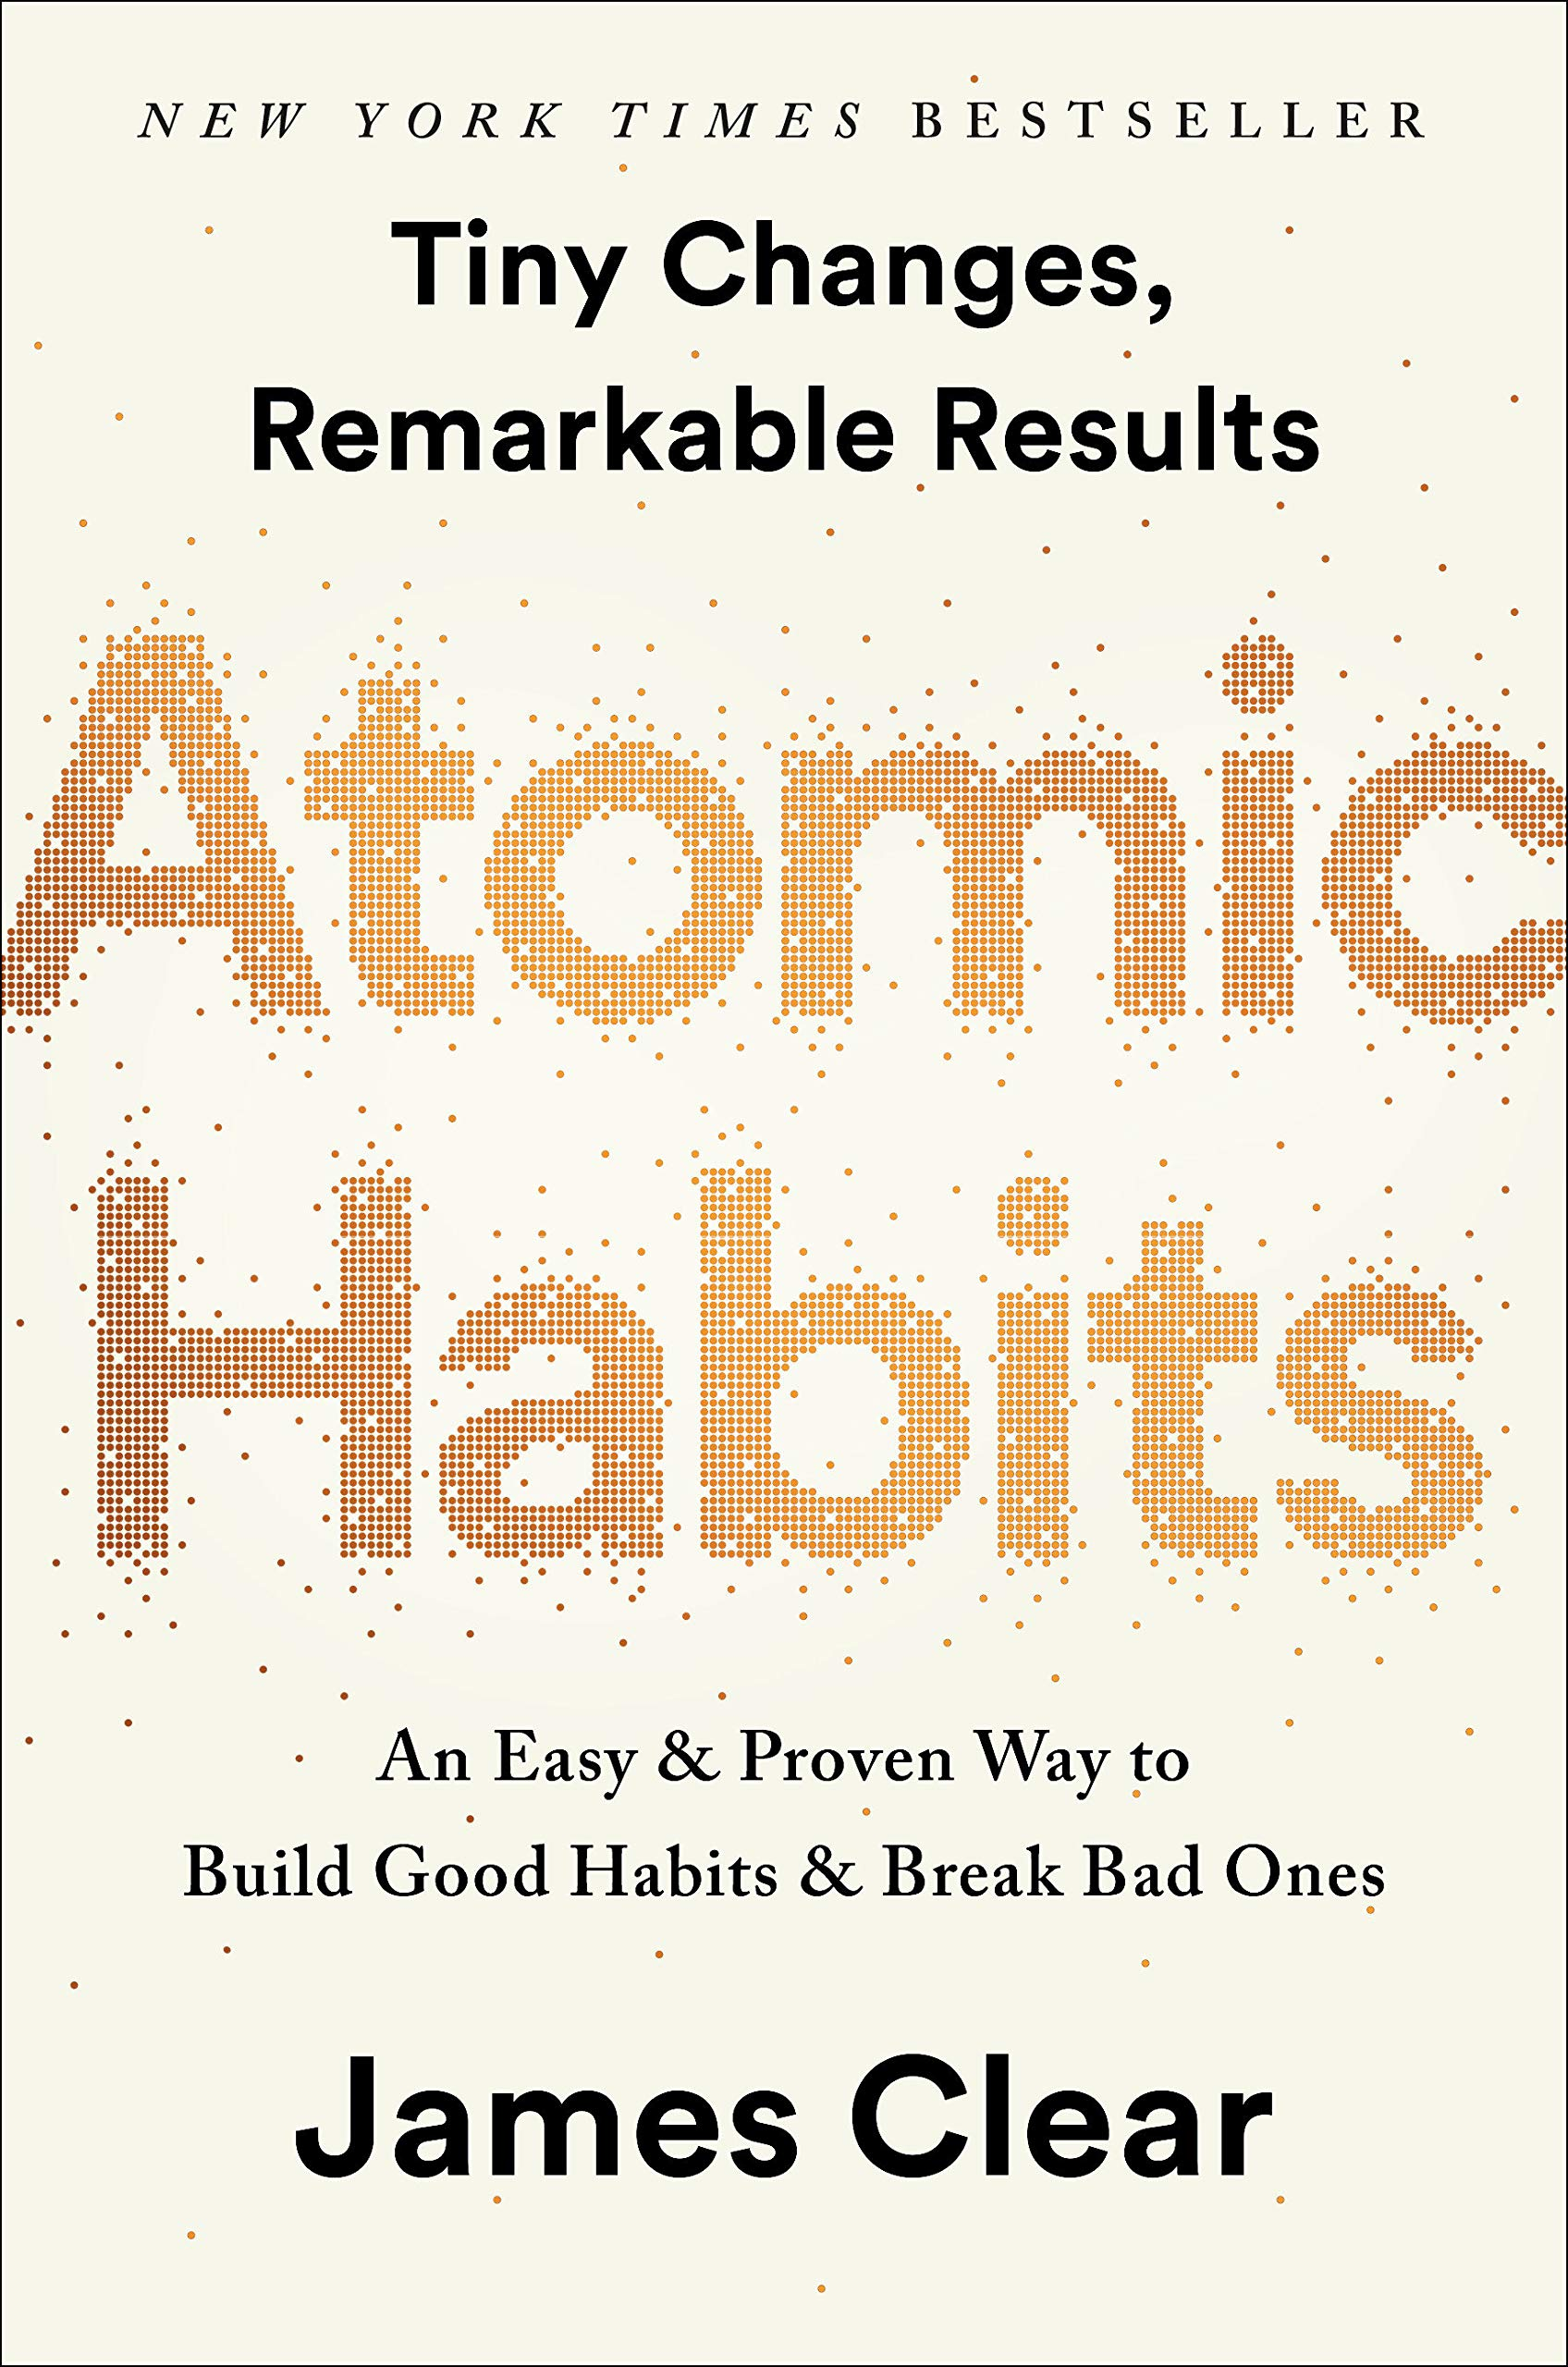 Powerful book - when you're looking to build habits